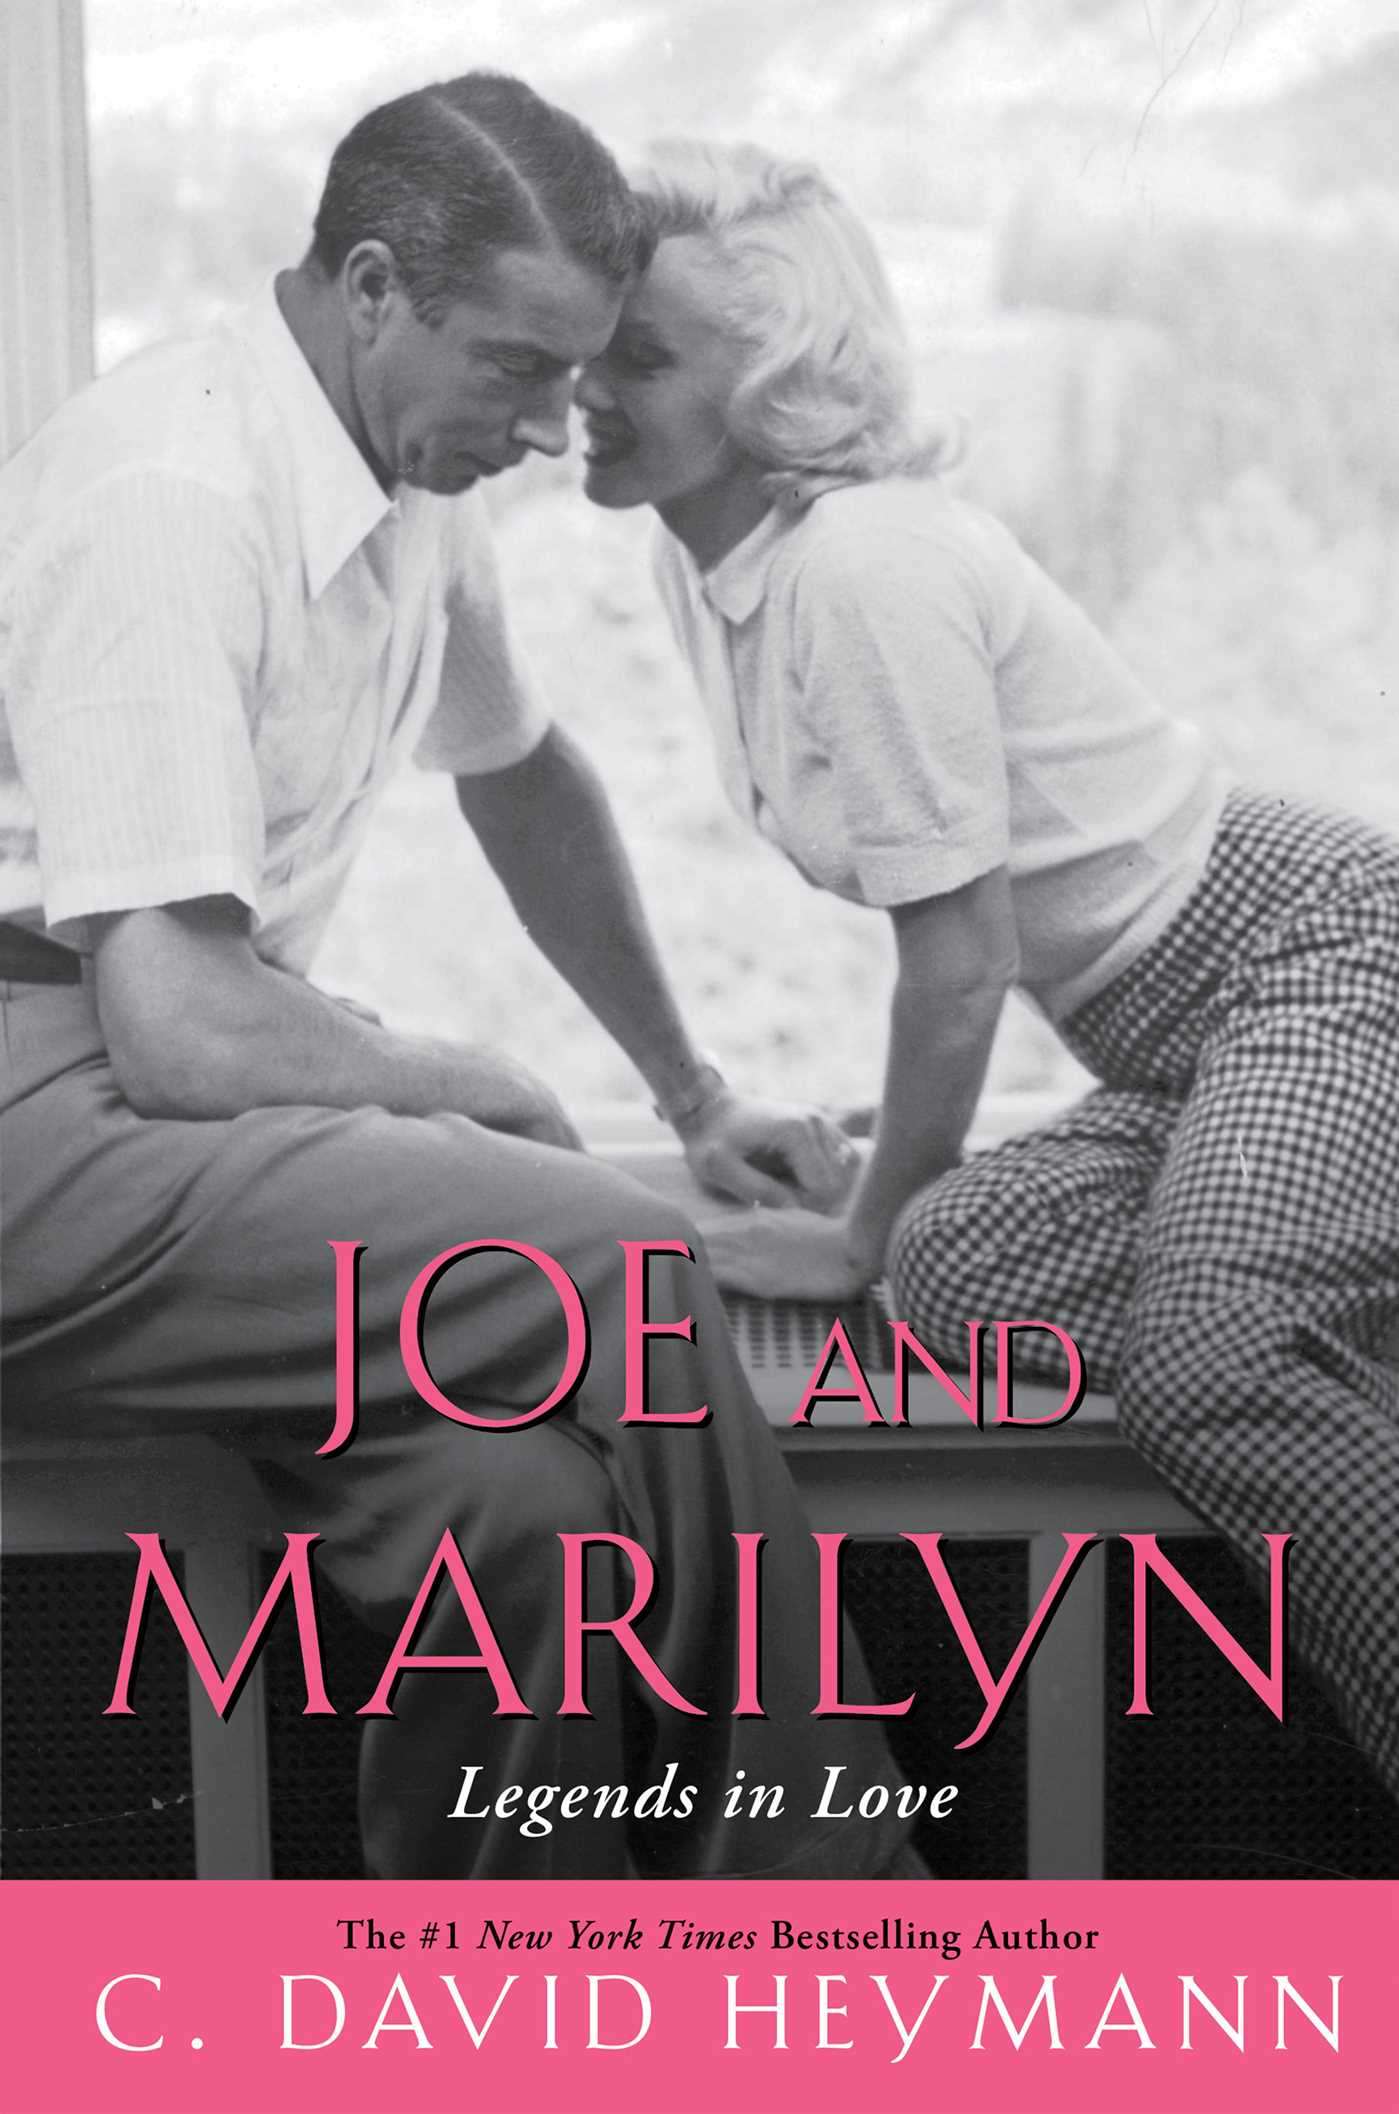 Joe-and-marilyn-9781439191798_hr